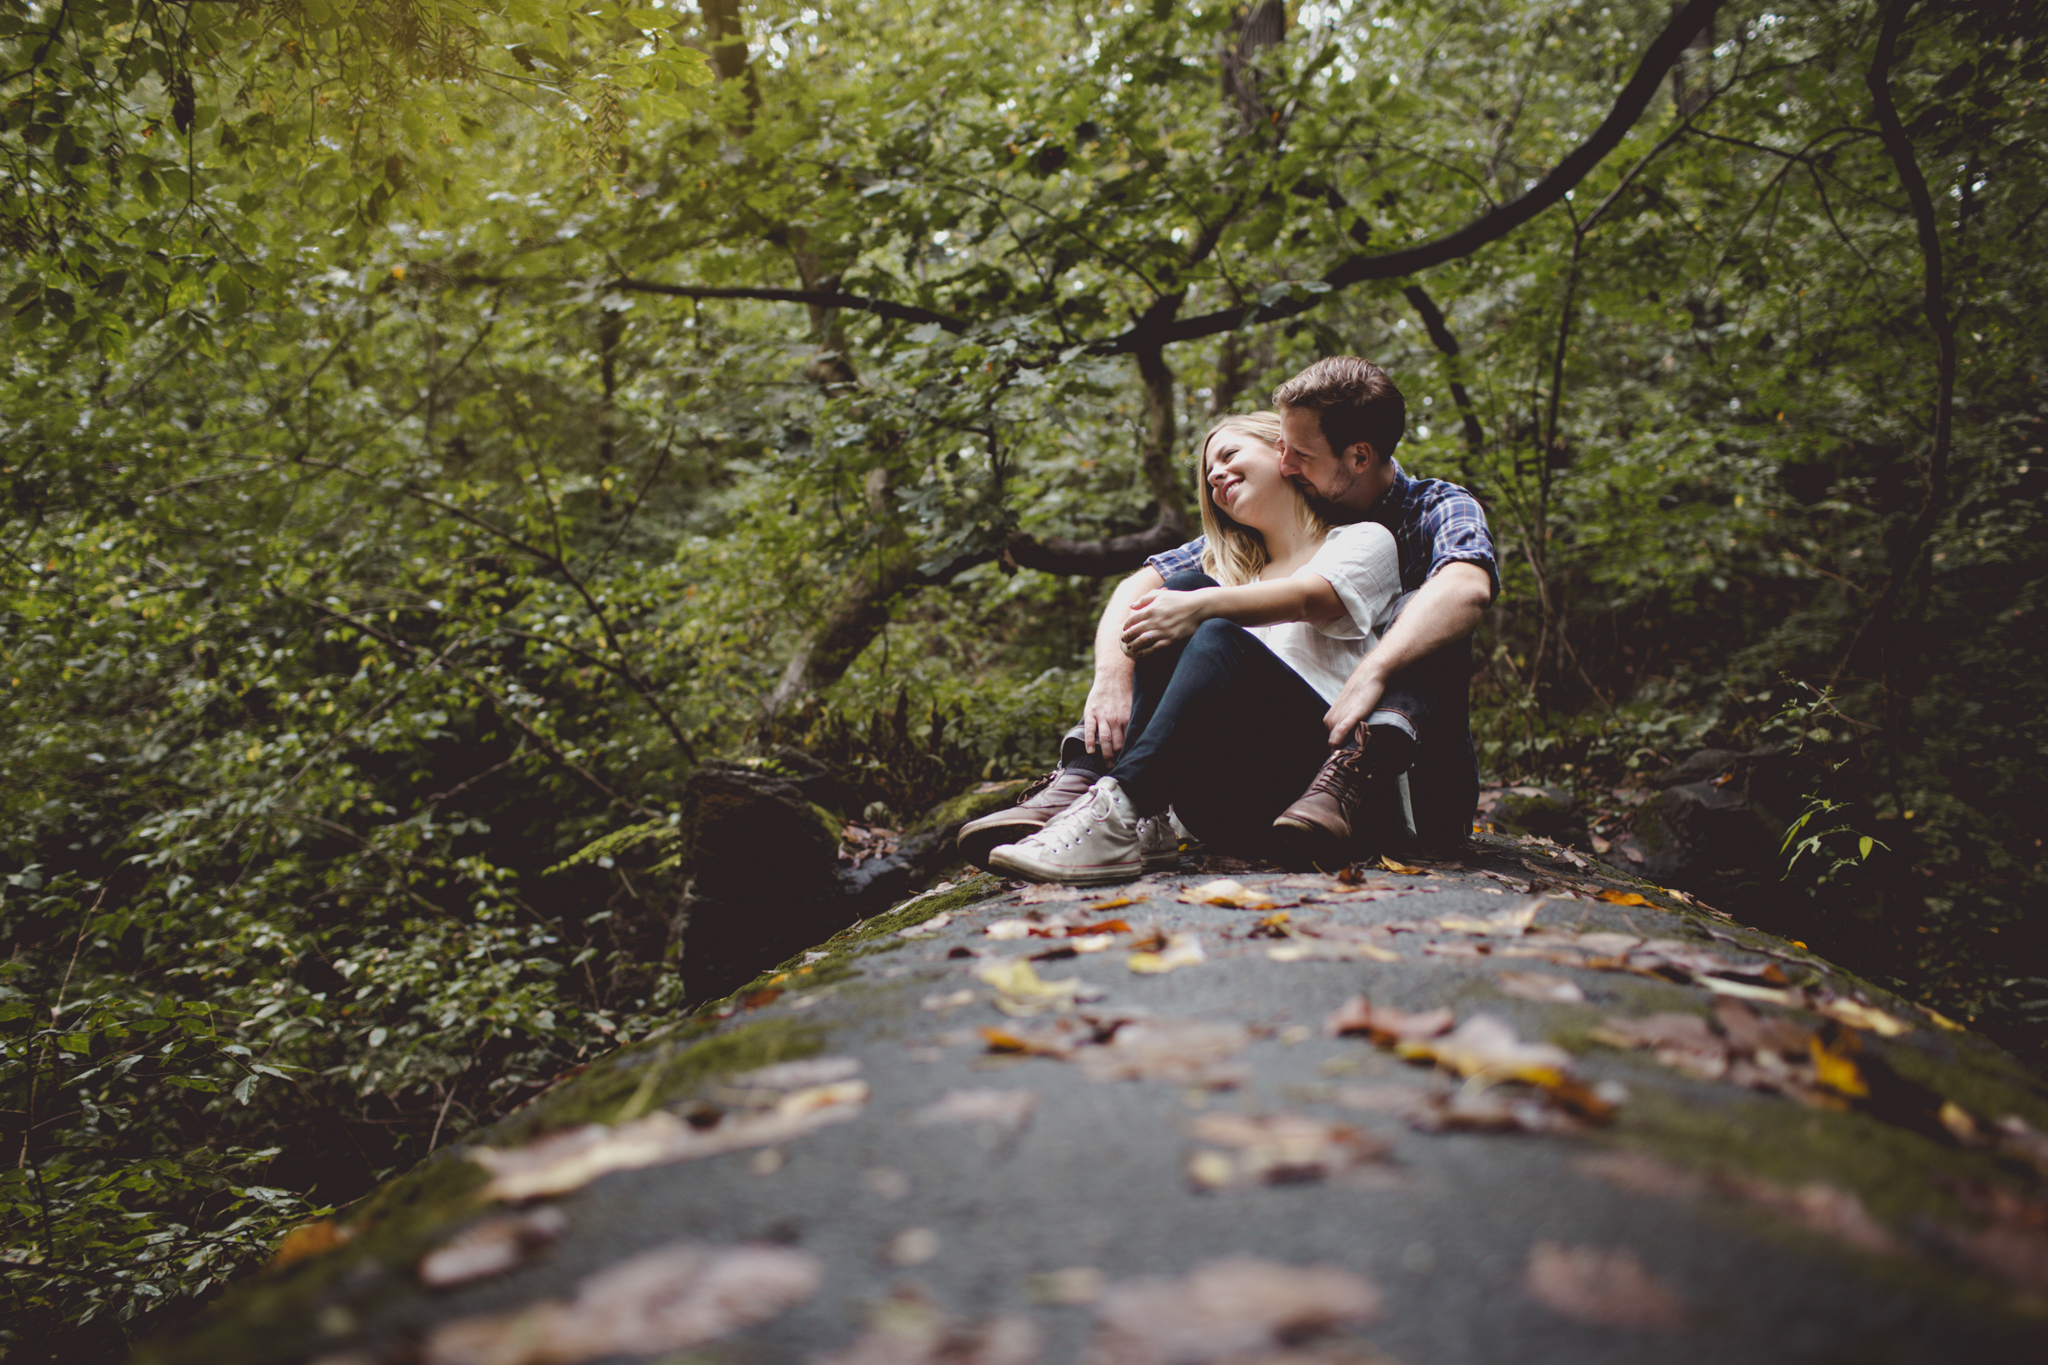 Cambria_Philly_Engagement_Photography-8021.jpg